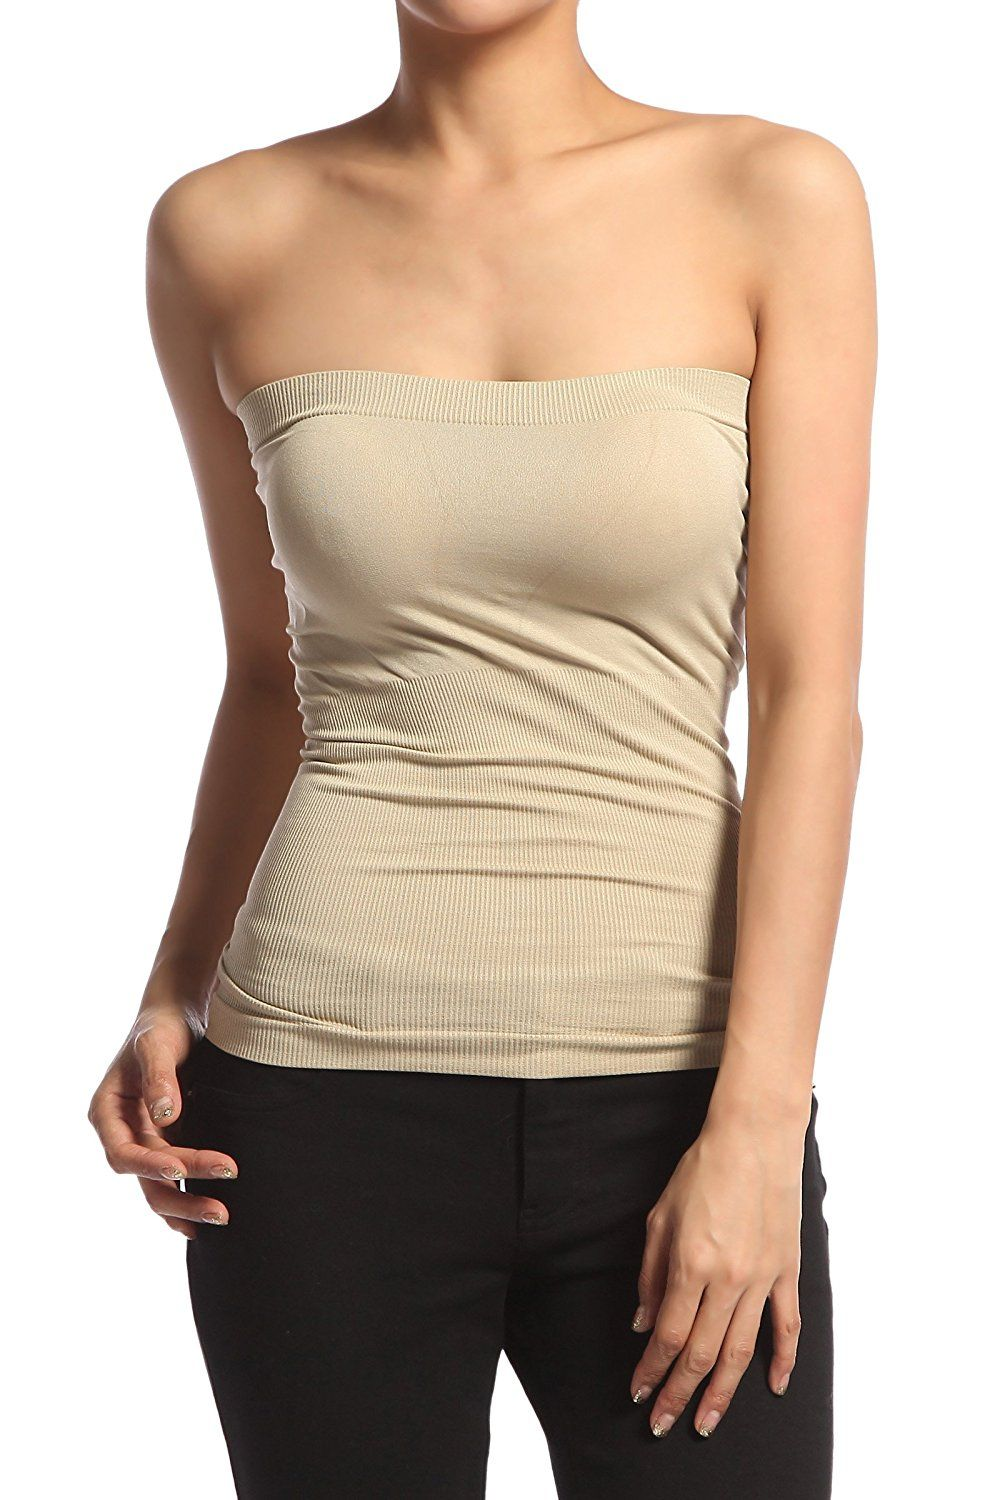 1150eaedf6 TheLovely Seamless Strapless Bandeau Tube Top Shaping Ribbed Waist Tank  Bandeau